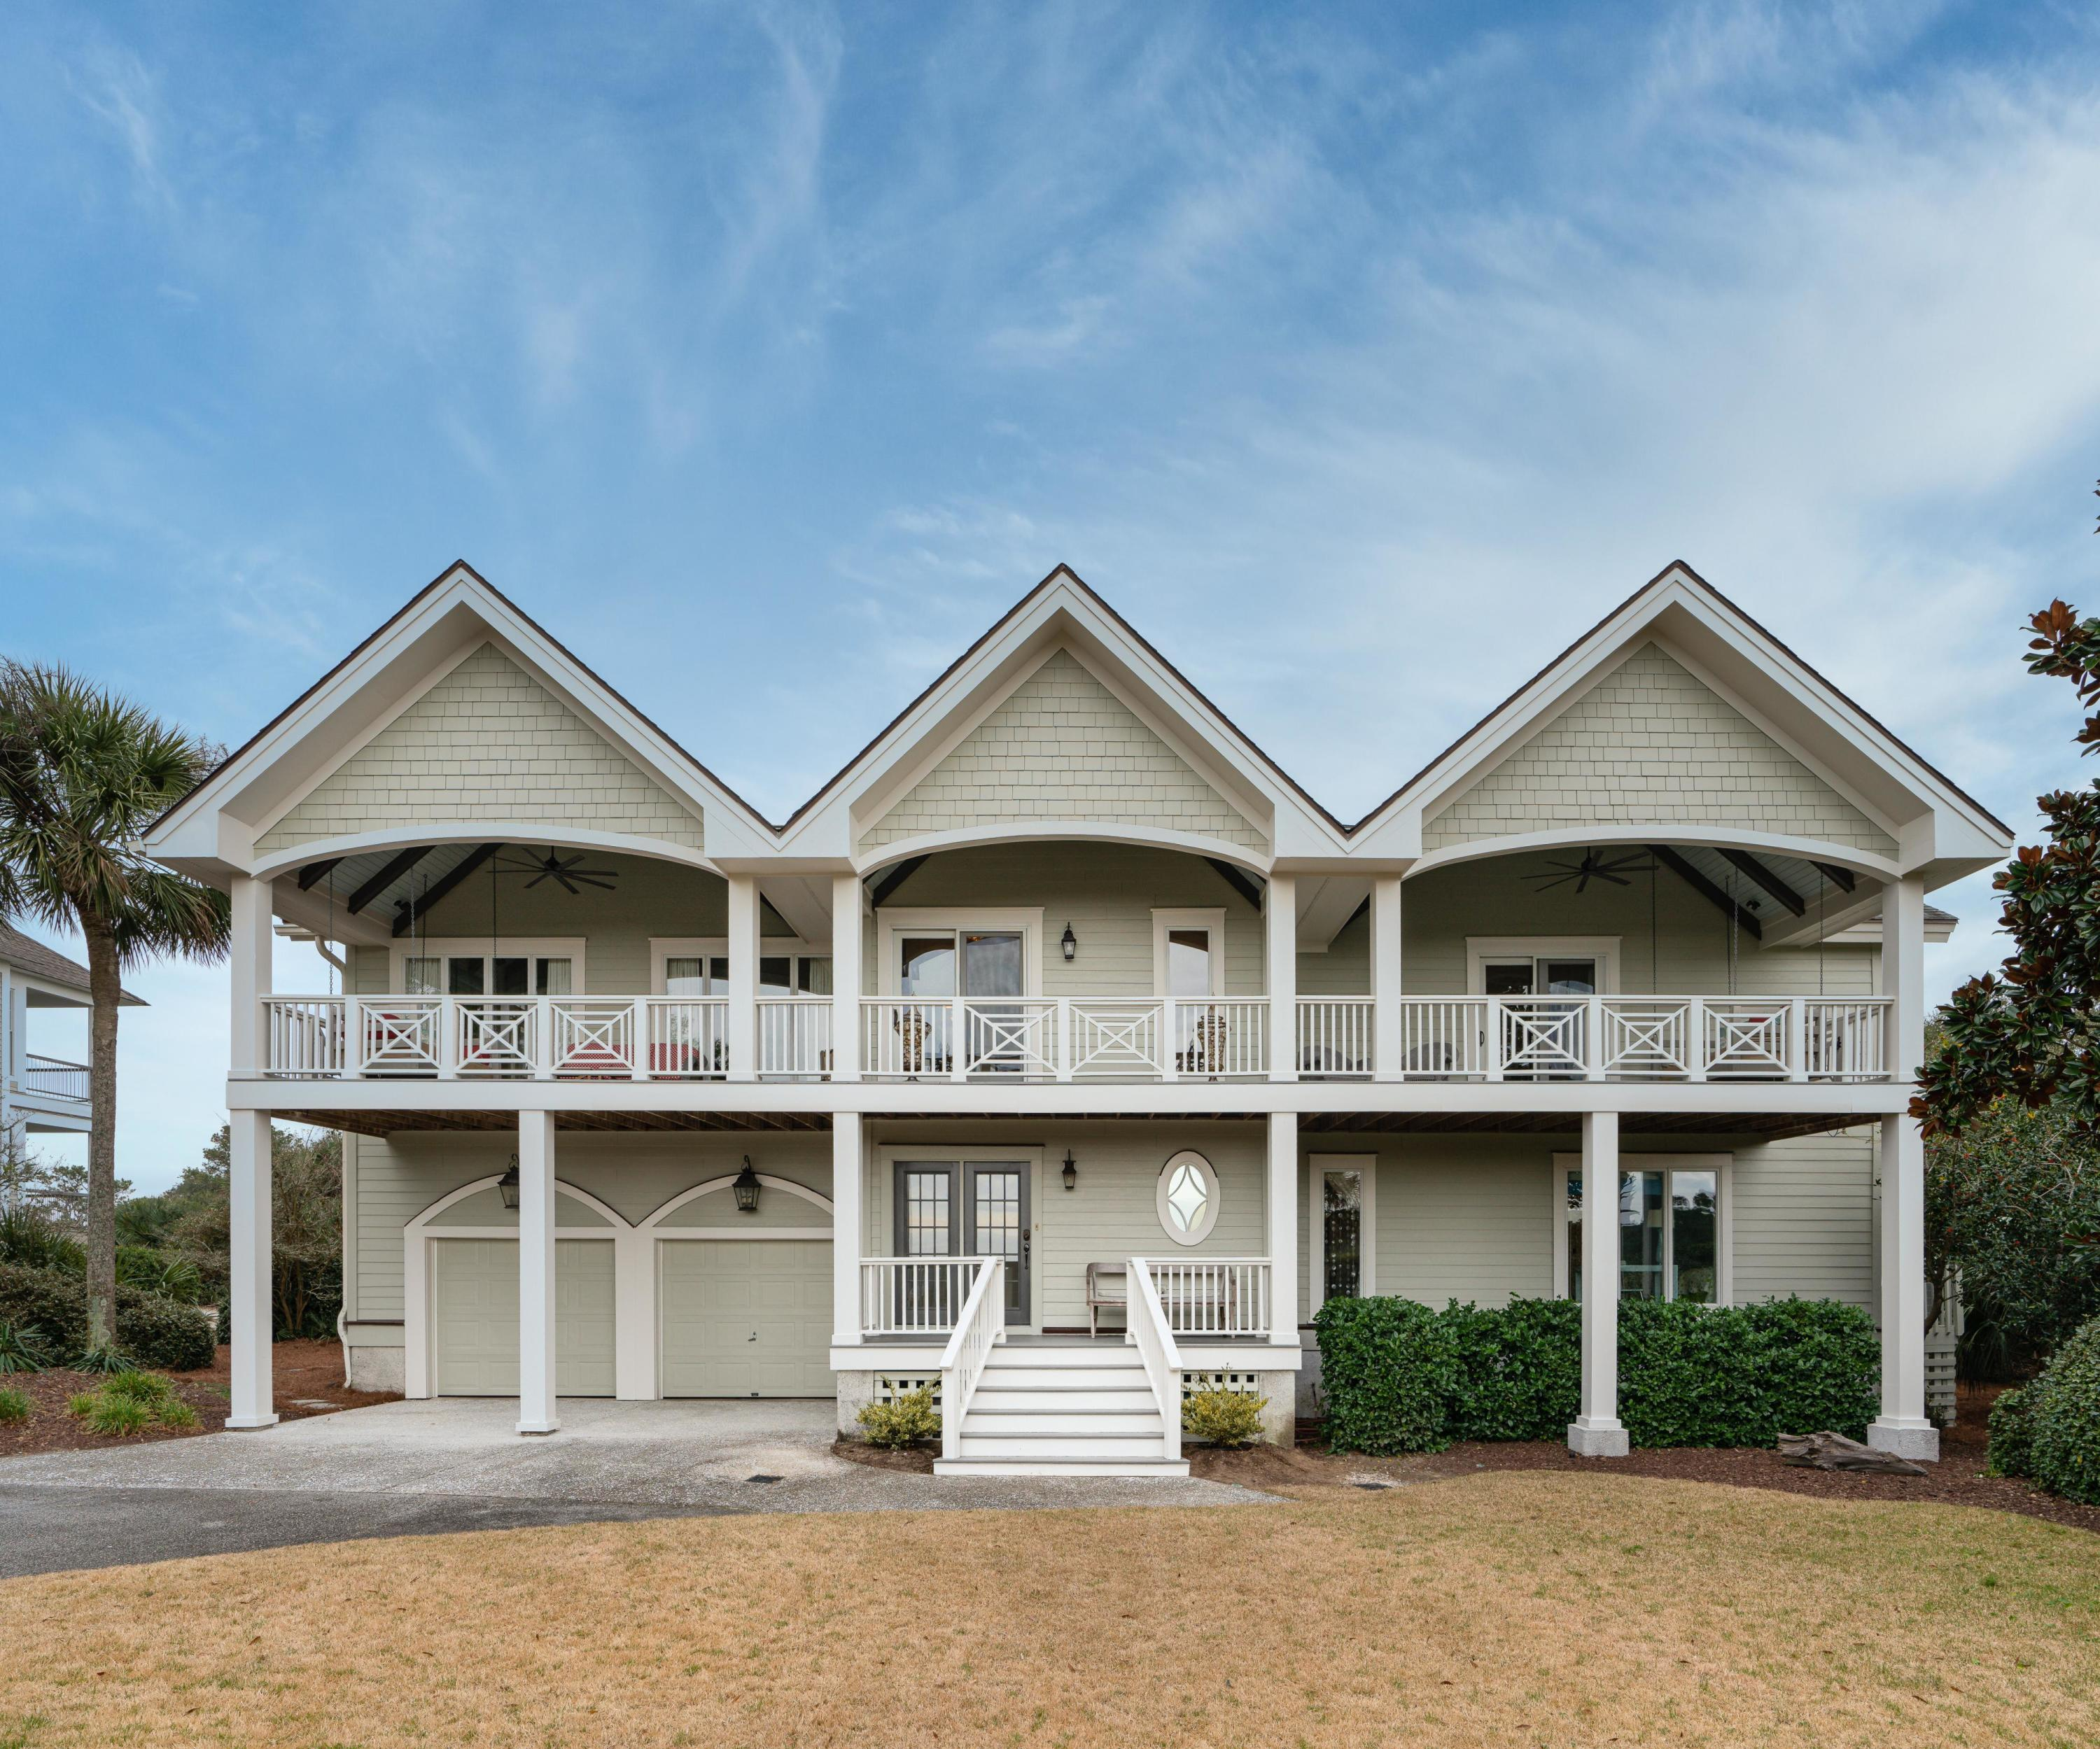 Seabrook Island Homes For Sale - 2335 Oyster Catcher, Seabrook Island, SC - 18